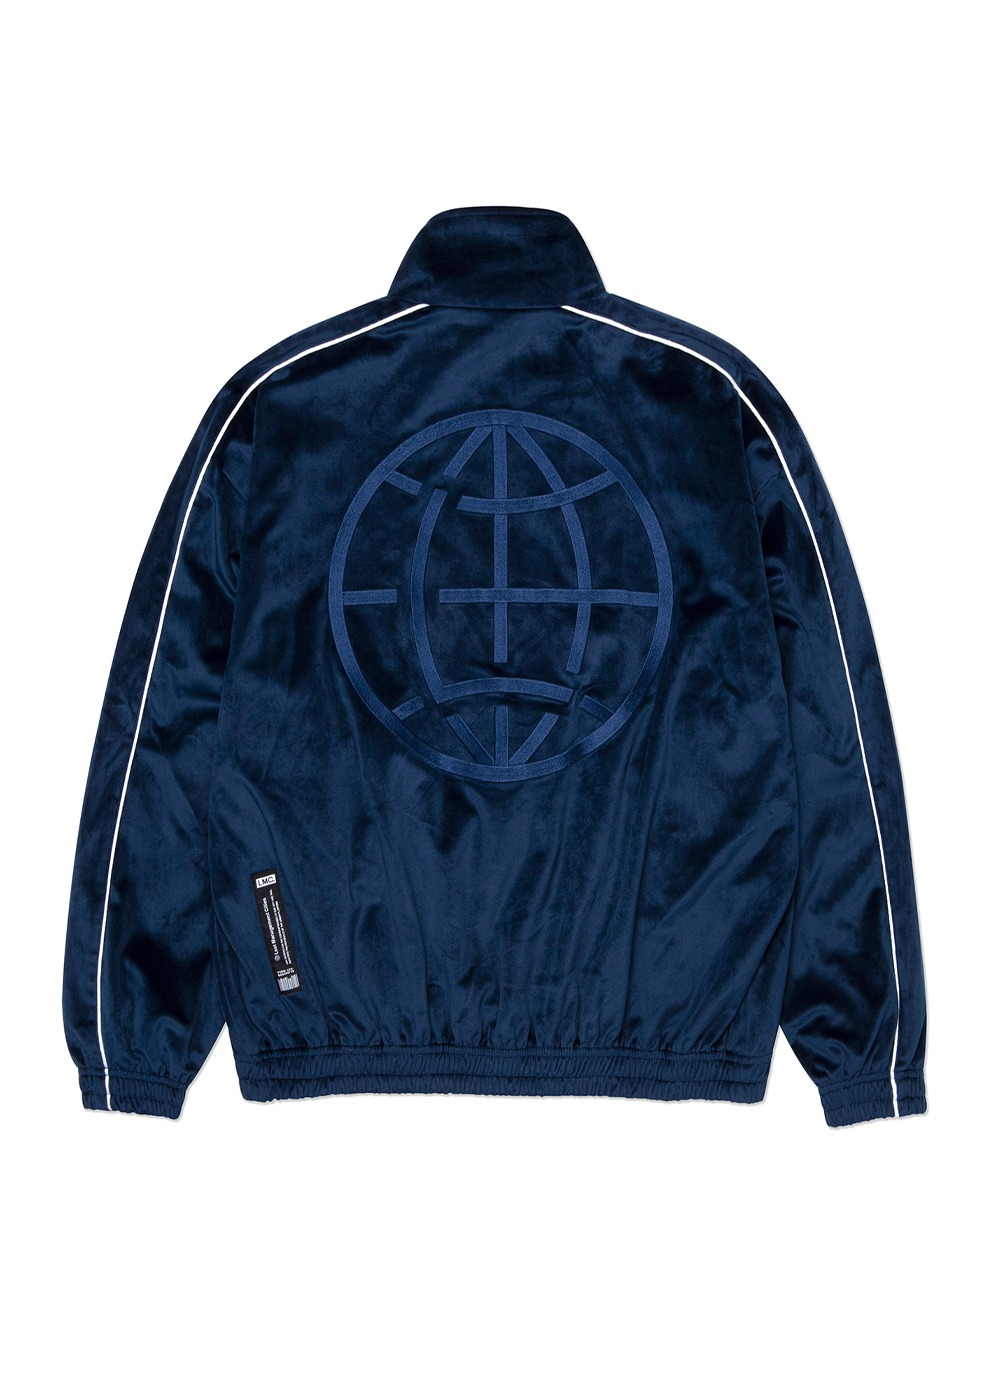 LMC VELOUR TRACK TOP navy